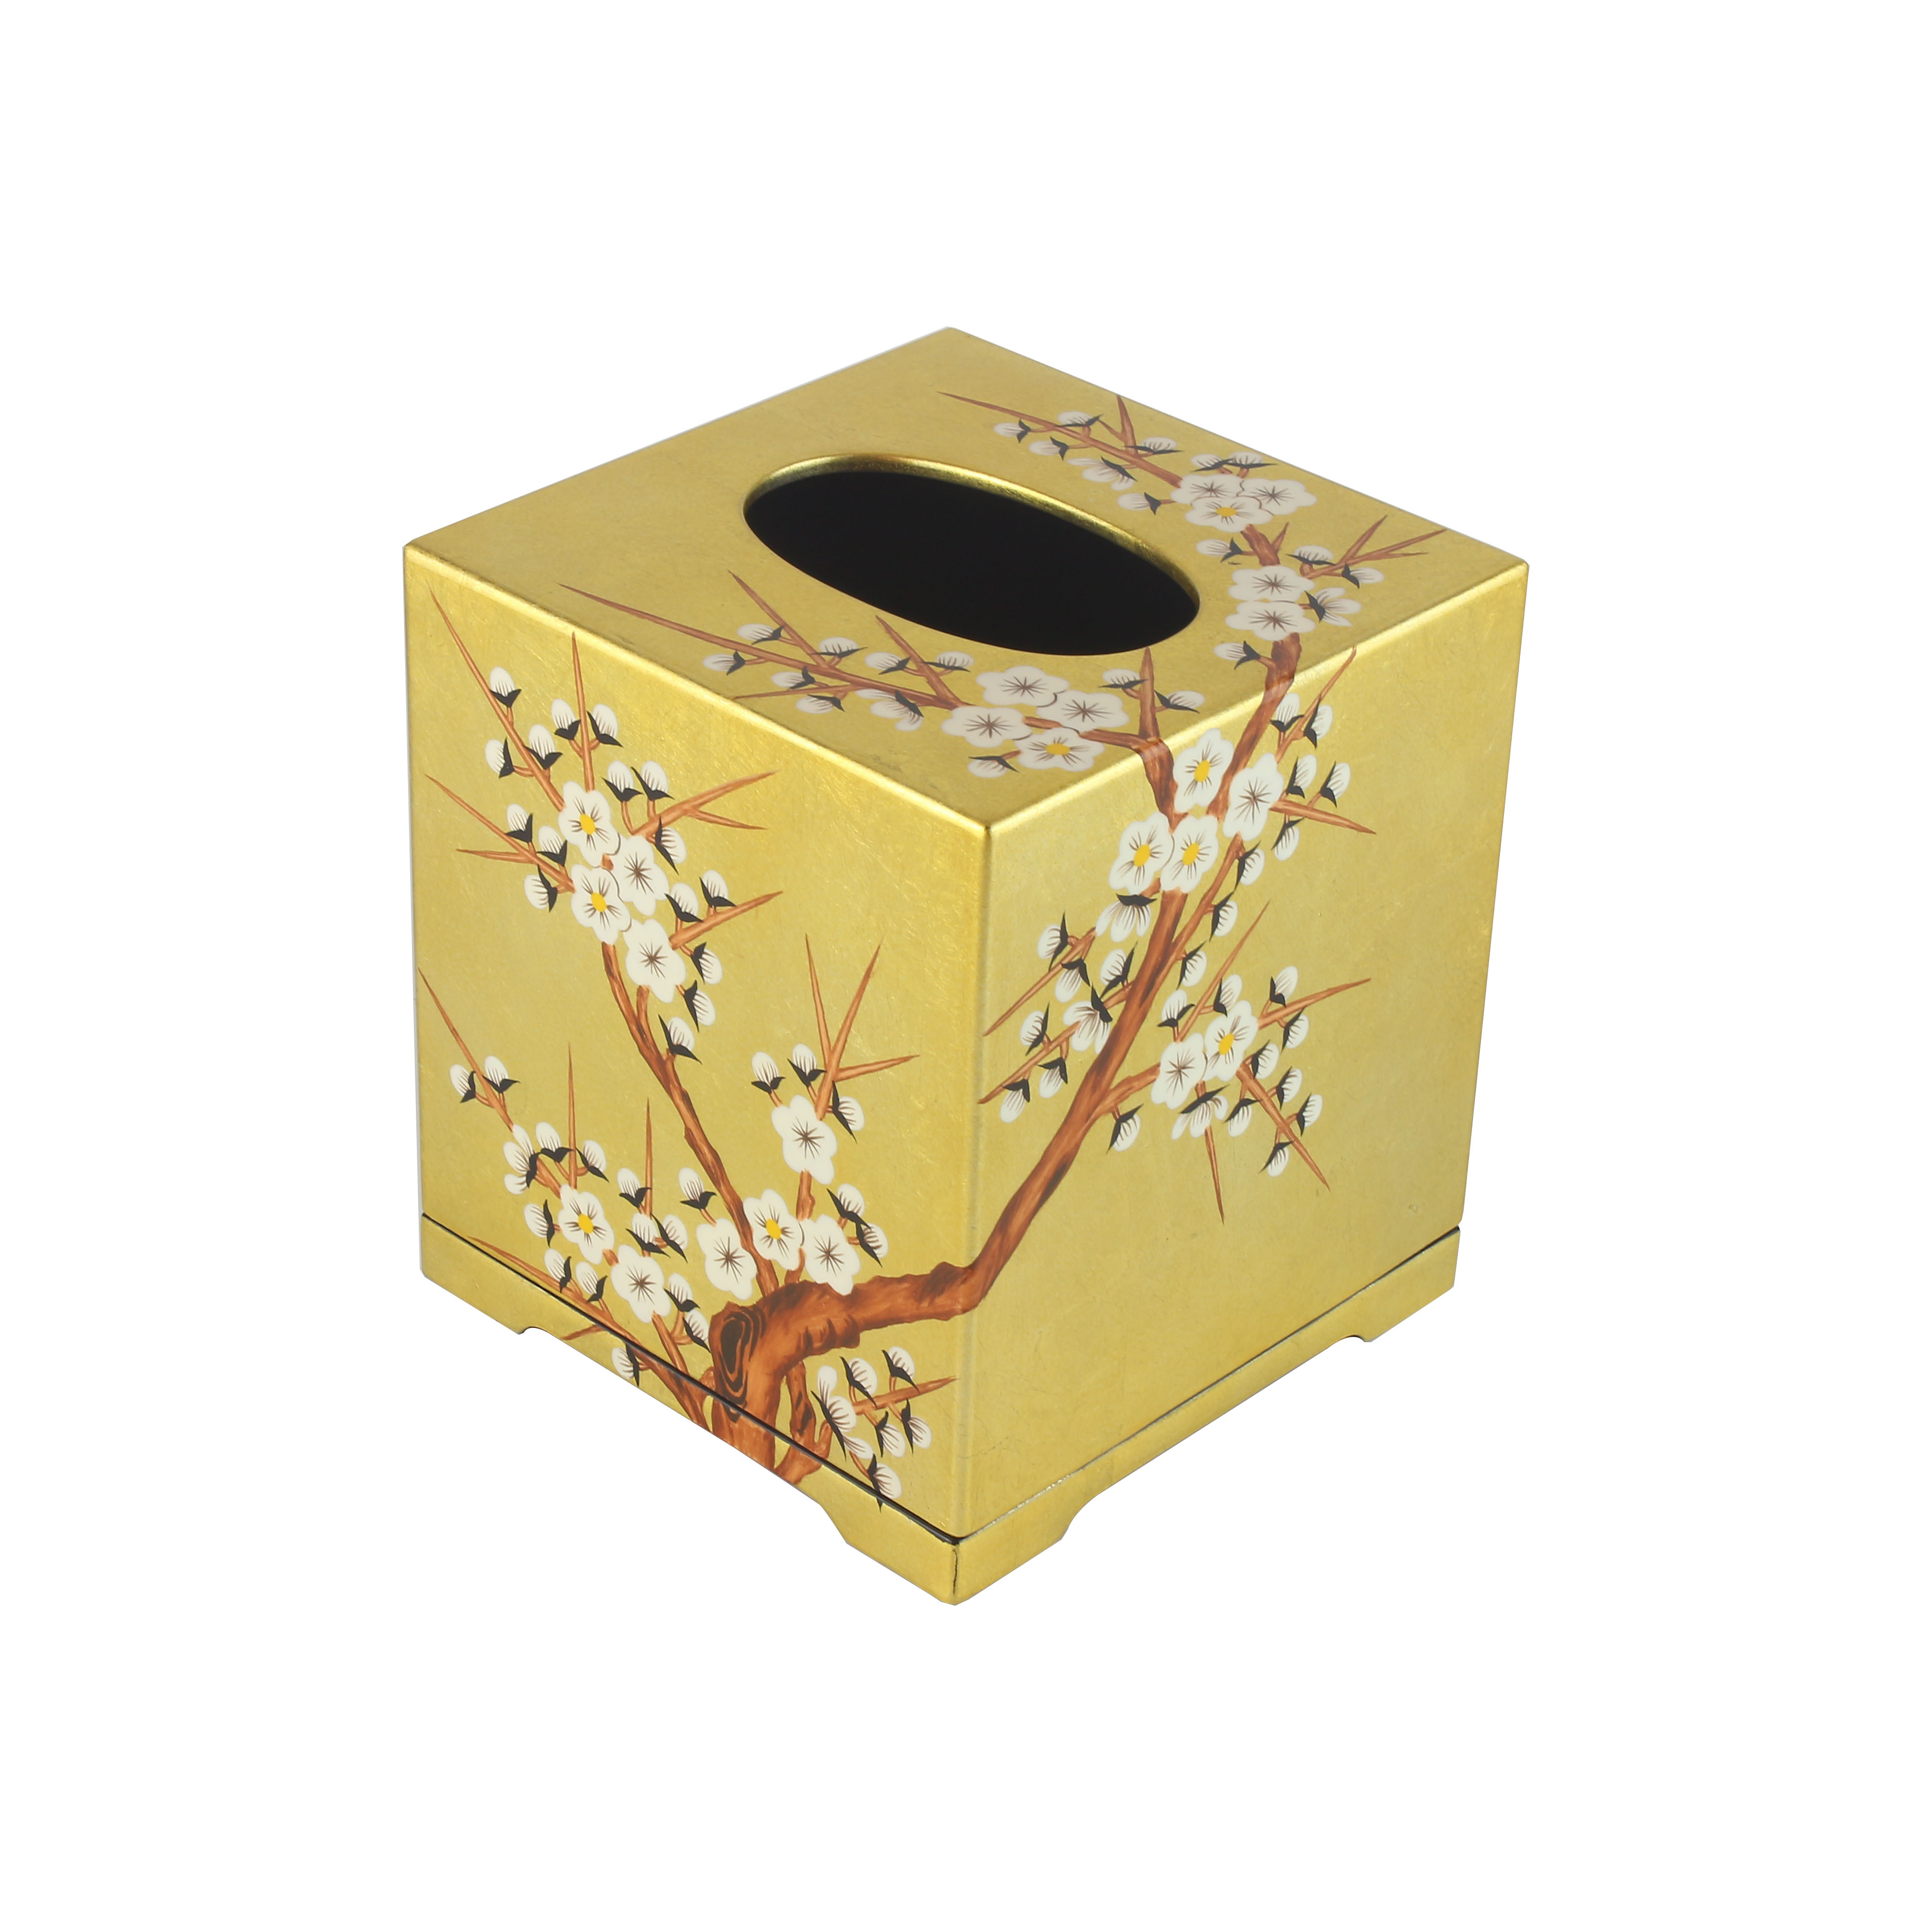 Handpainted Gold Inlay Square Tissue Box